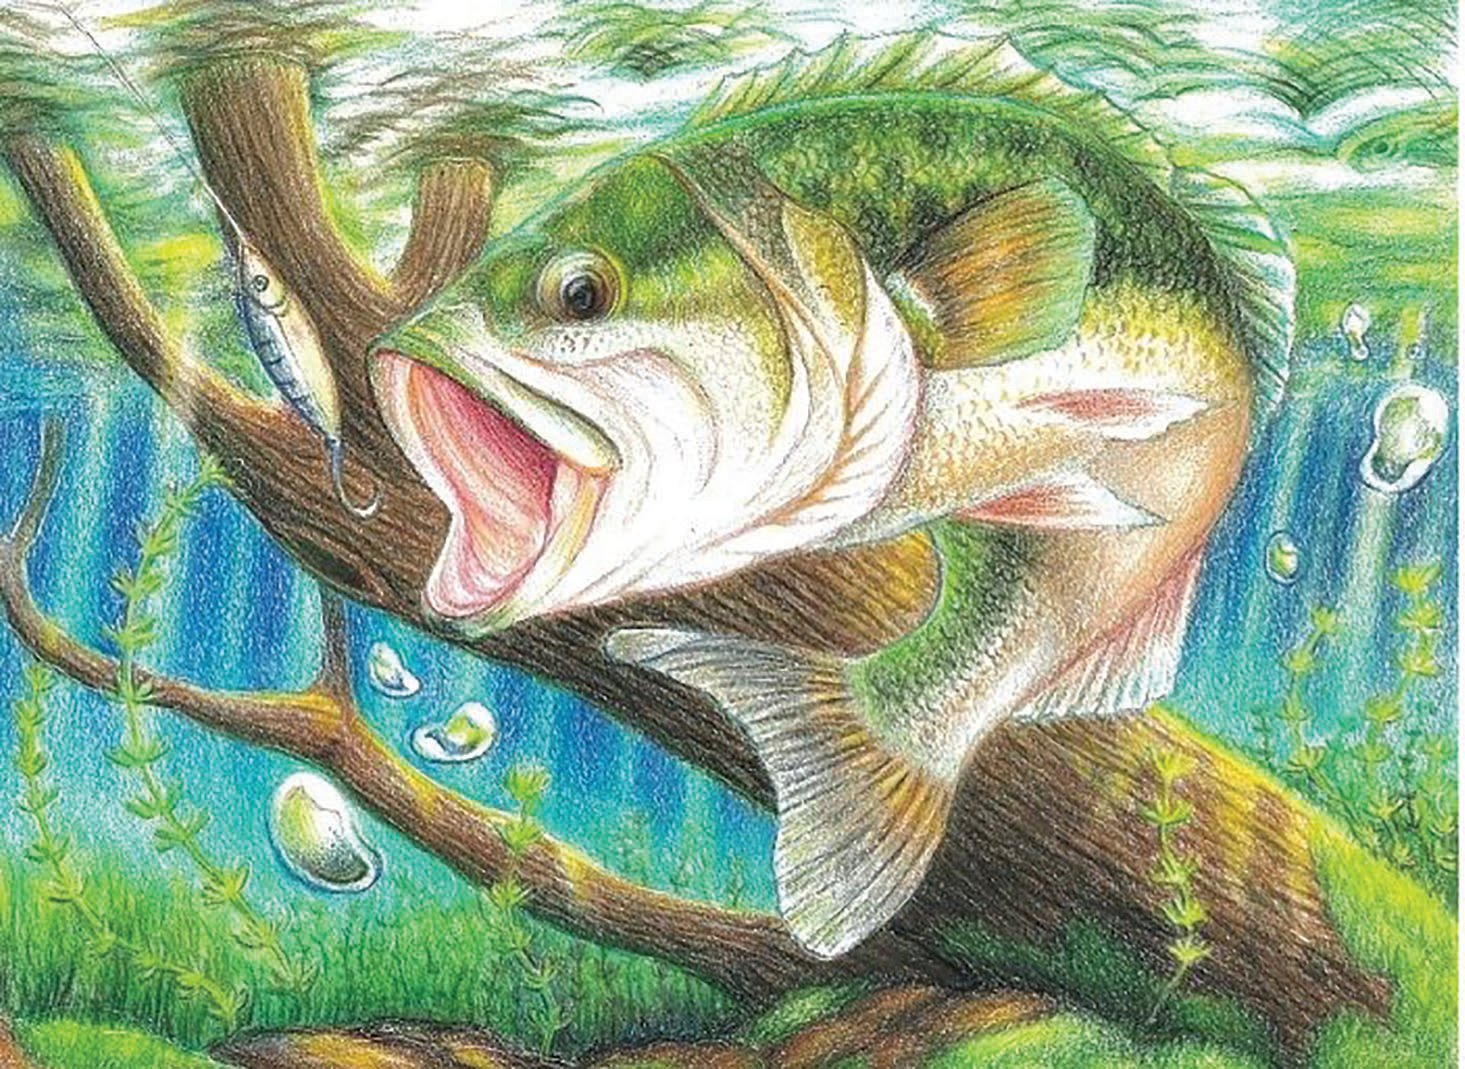 FWC to host Florida State-Fish Art Contest | South Central Florida Life